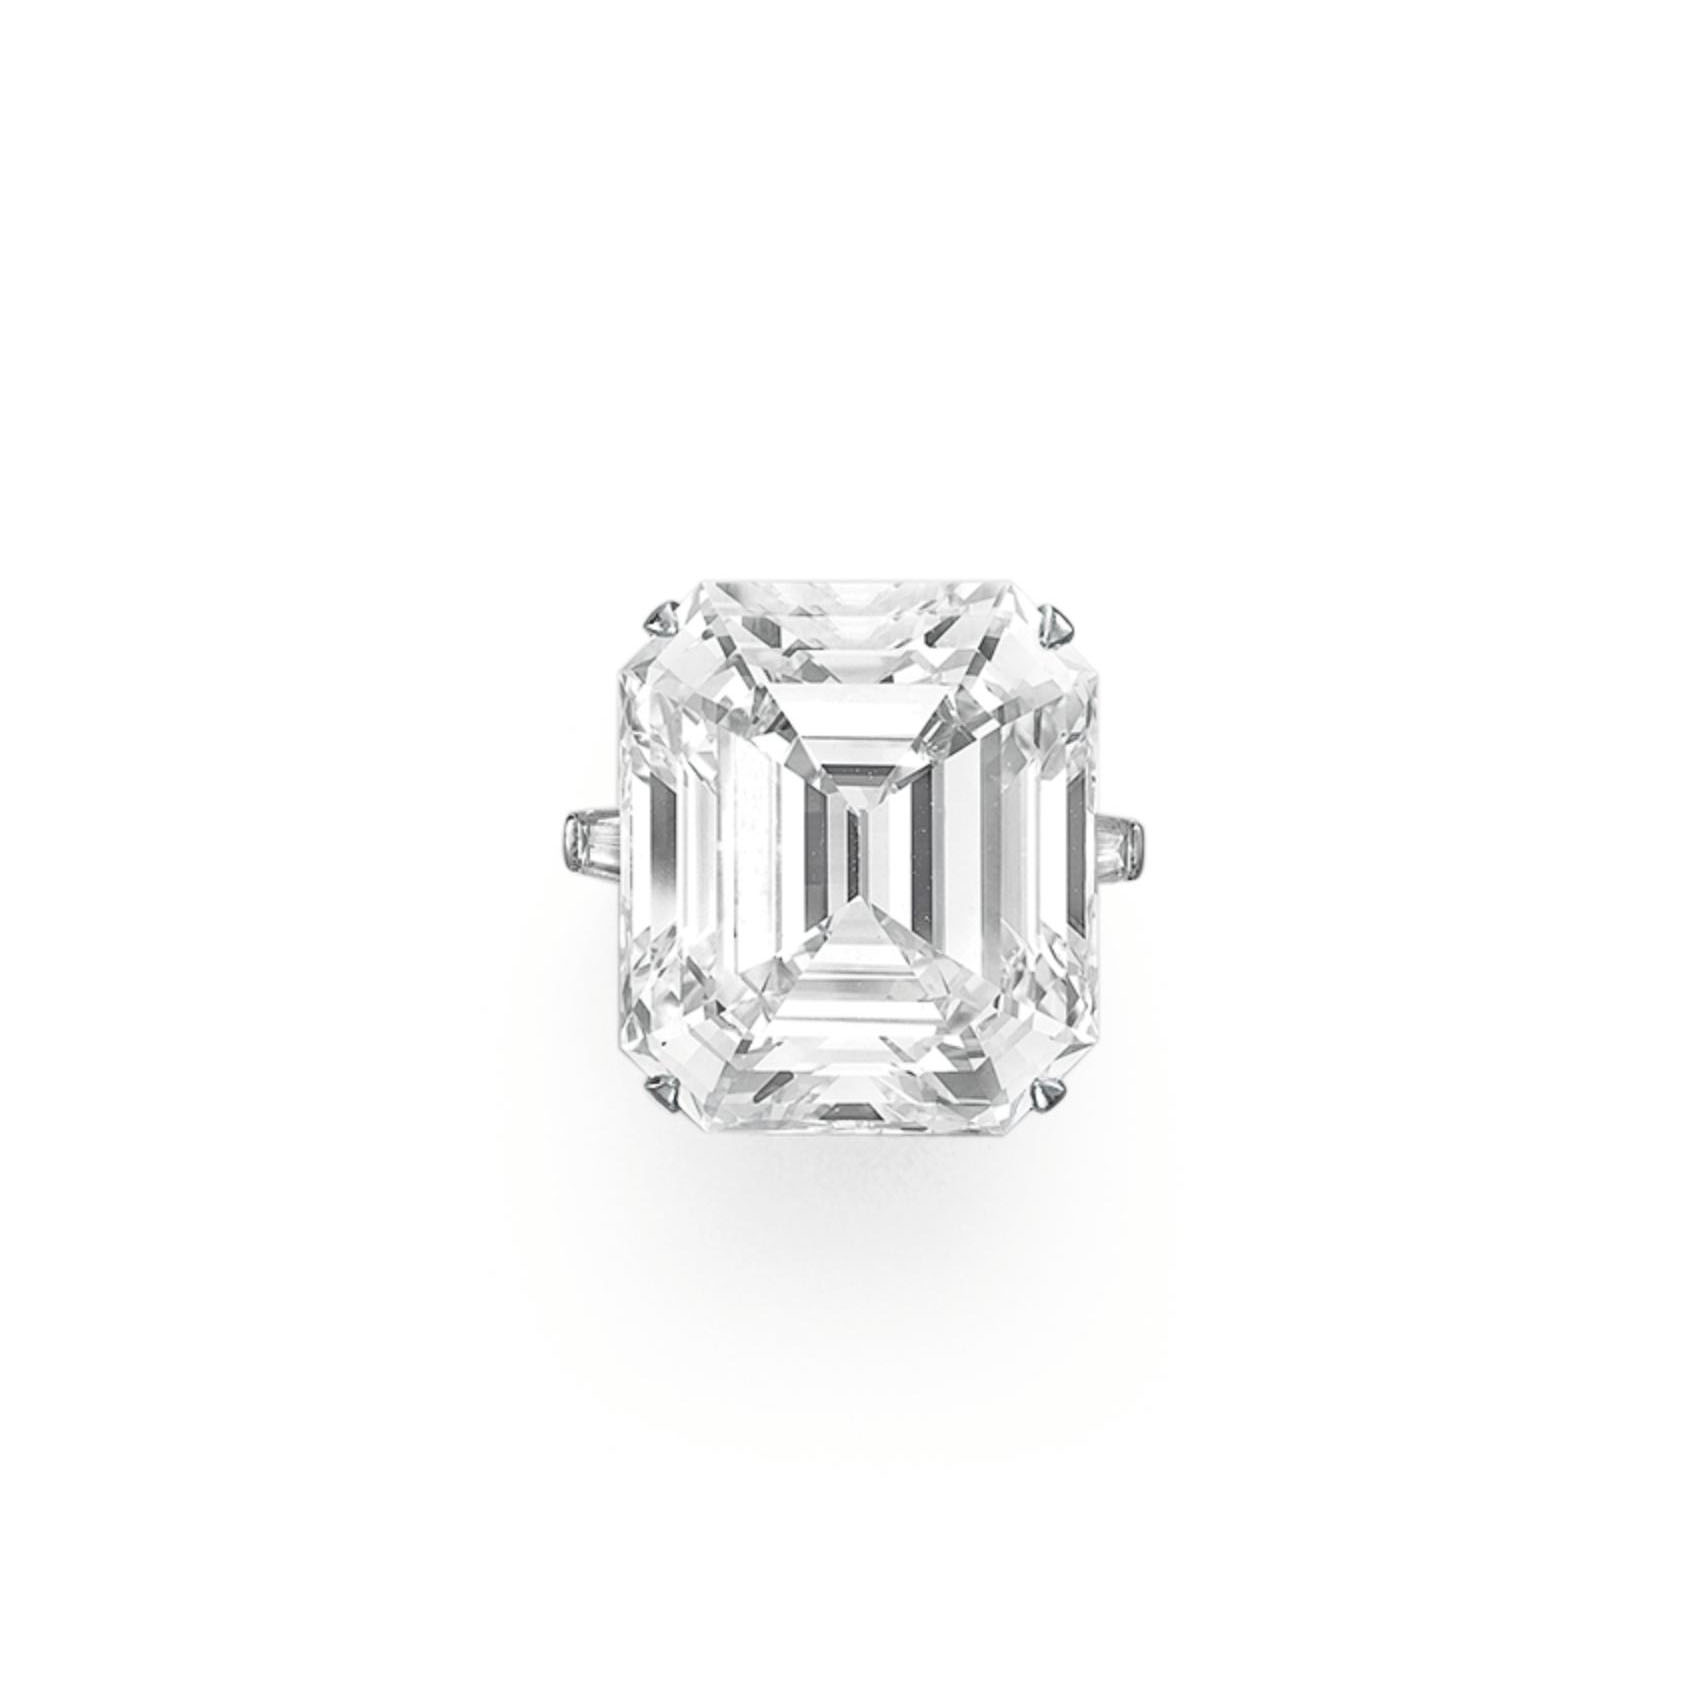 A MAGNIFICENT DIAMOND RING, BY GRAFF